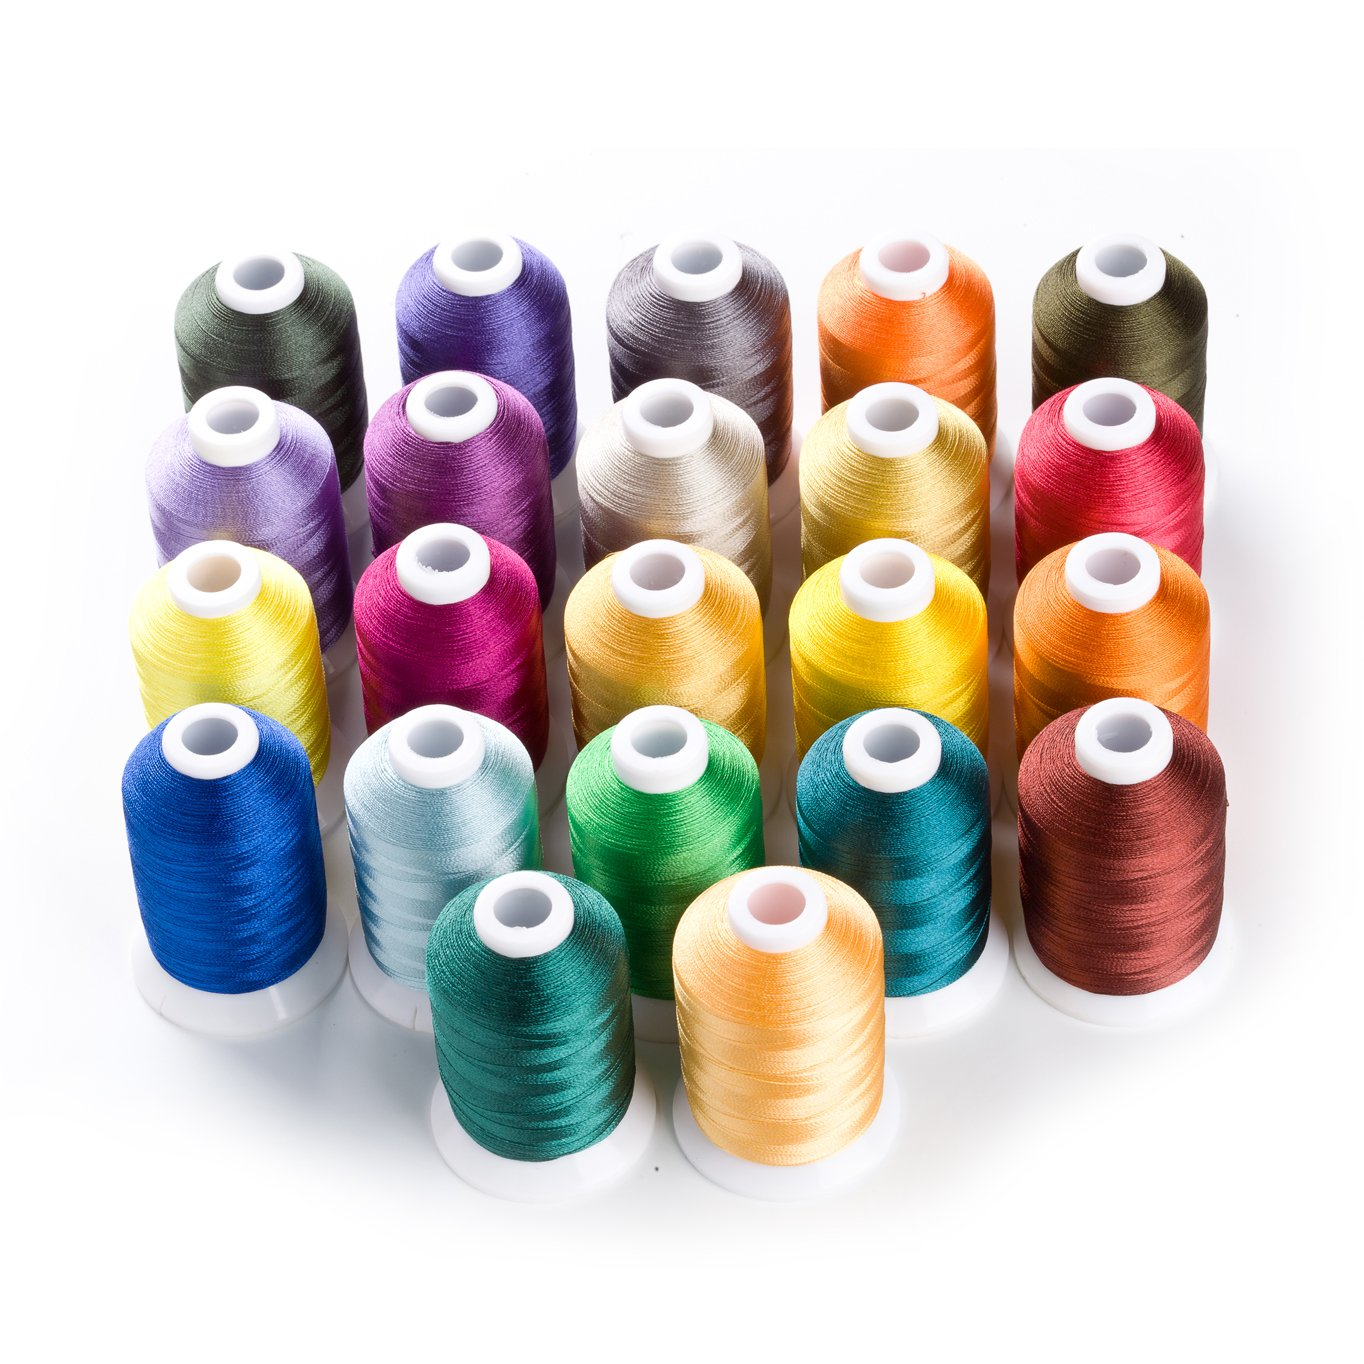 Sinbel Polyester Embroidery Machine Thread Bright and Beautiful Colors for Brother Babylock Janome Singer Pfaff Husqvarna Bernina Machines (1100Y, 22C) Xinbei Inc